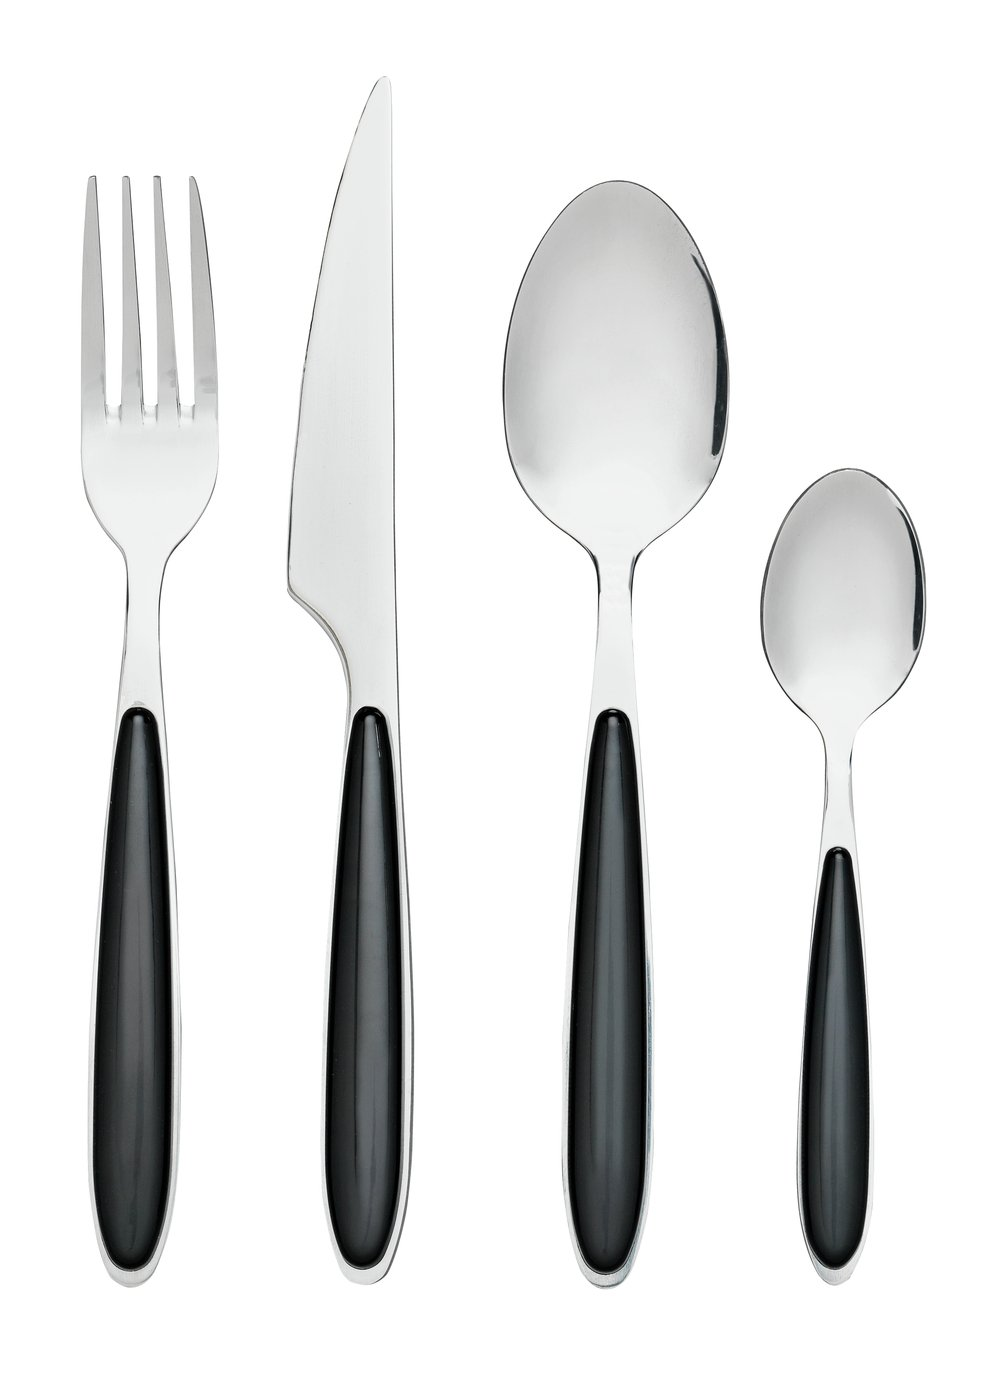 Argos Home 24 Piece Cutlery Set - Black